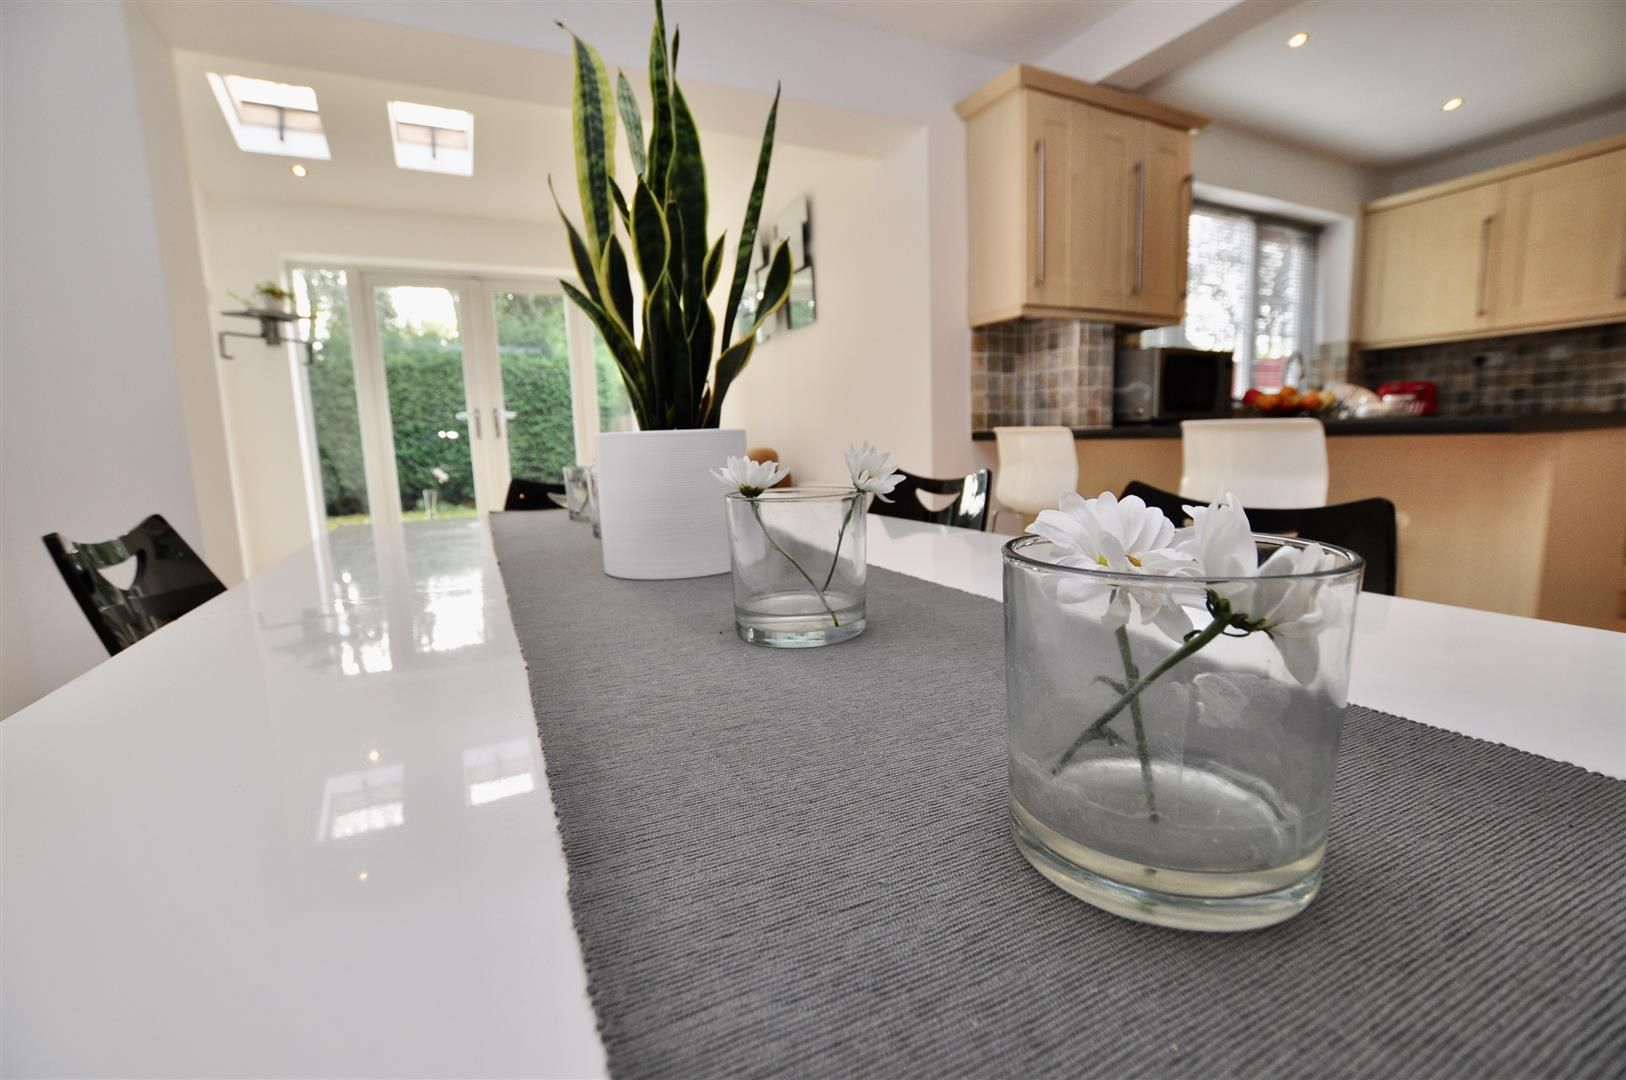 4 bed house for sale in Hagley 8